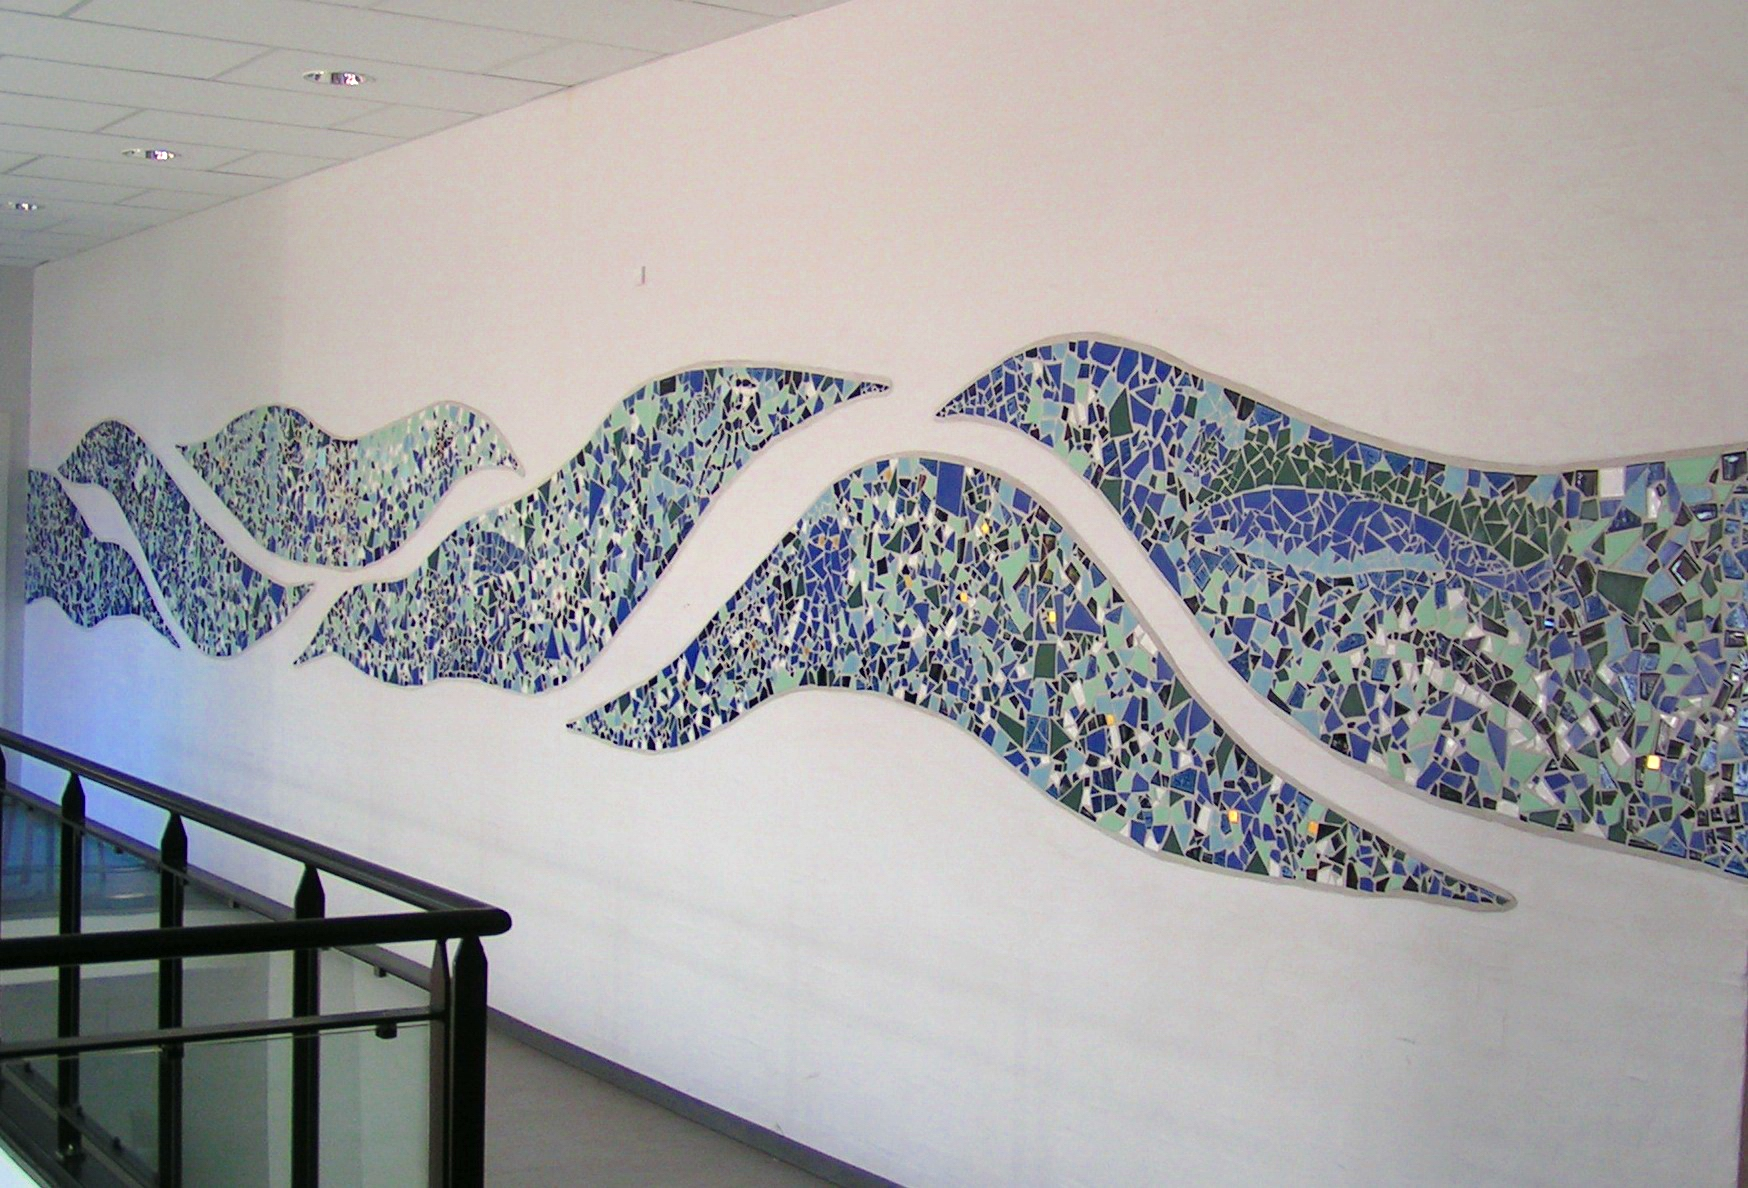 Bølgen i mosaik - The Wave mosaic wall decoration